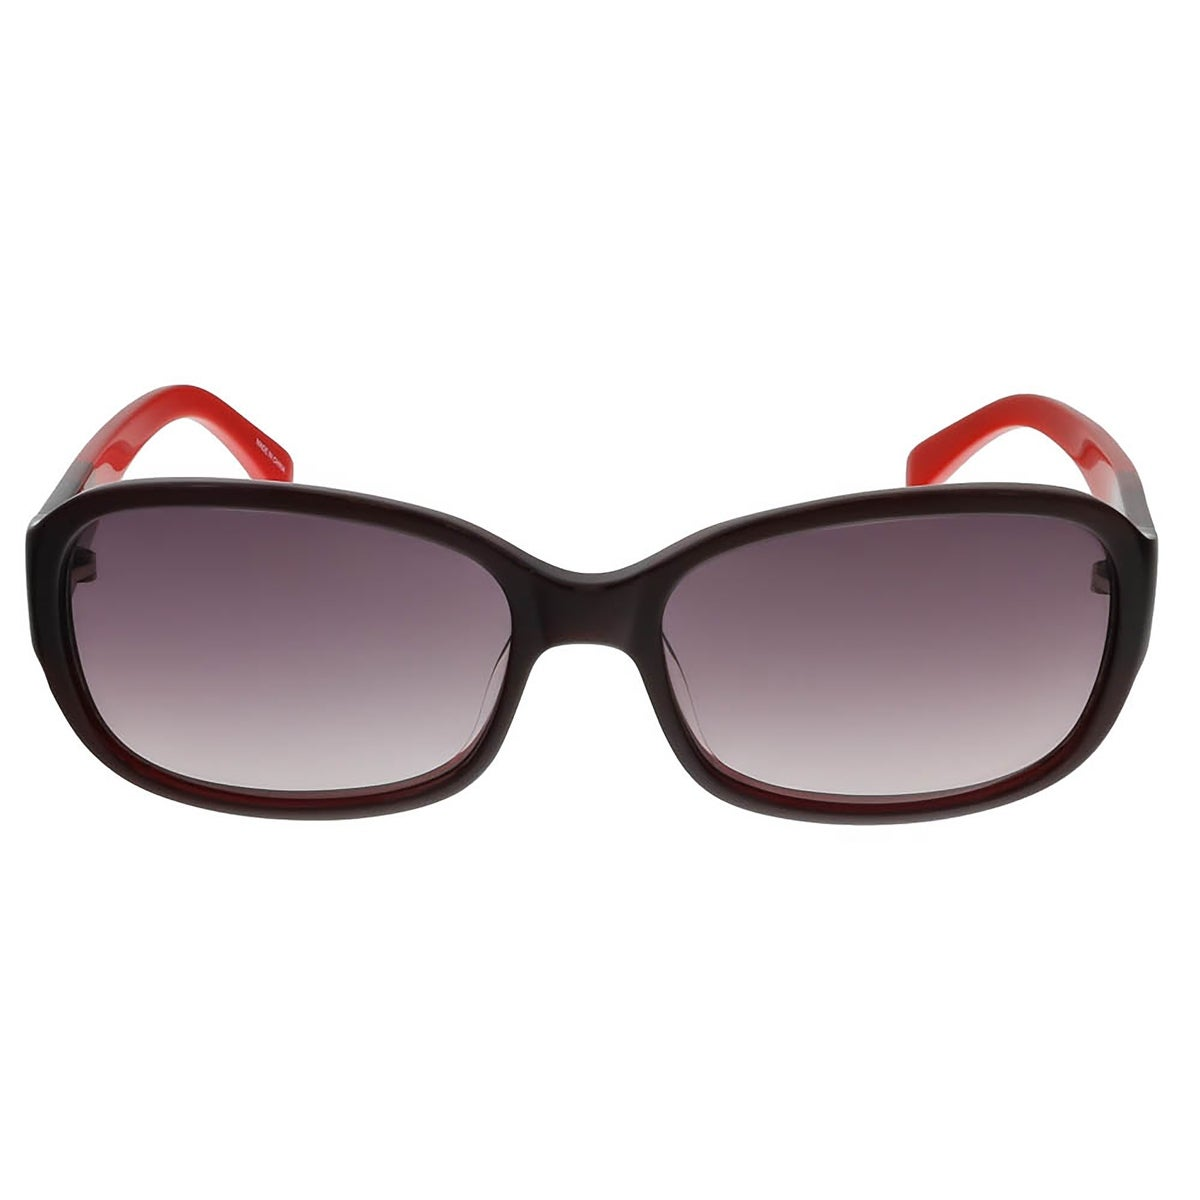 a1c26f69e358 Shop Lacoste L784 S 615 Red Rectangle sunglasses Sunglasses - 56-16-135 -  Free Shipping Today - Overstock - 13402268